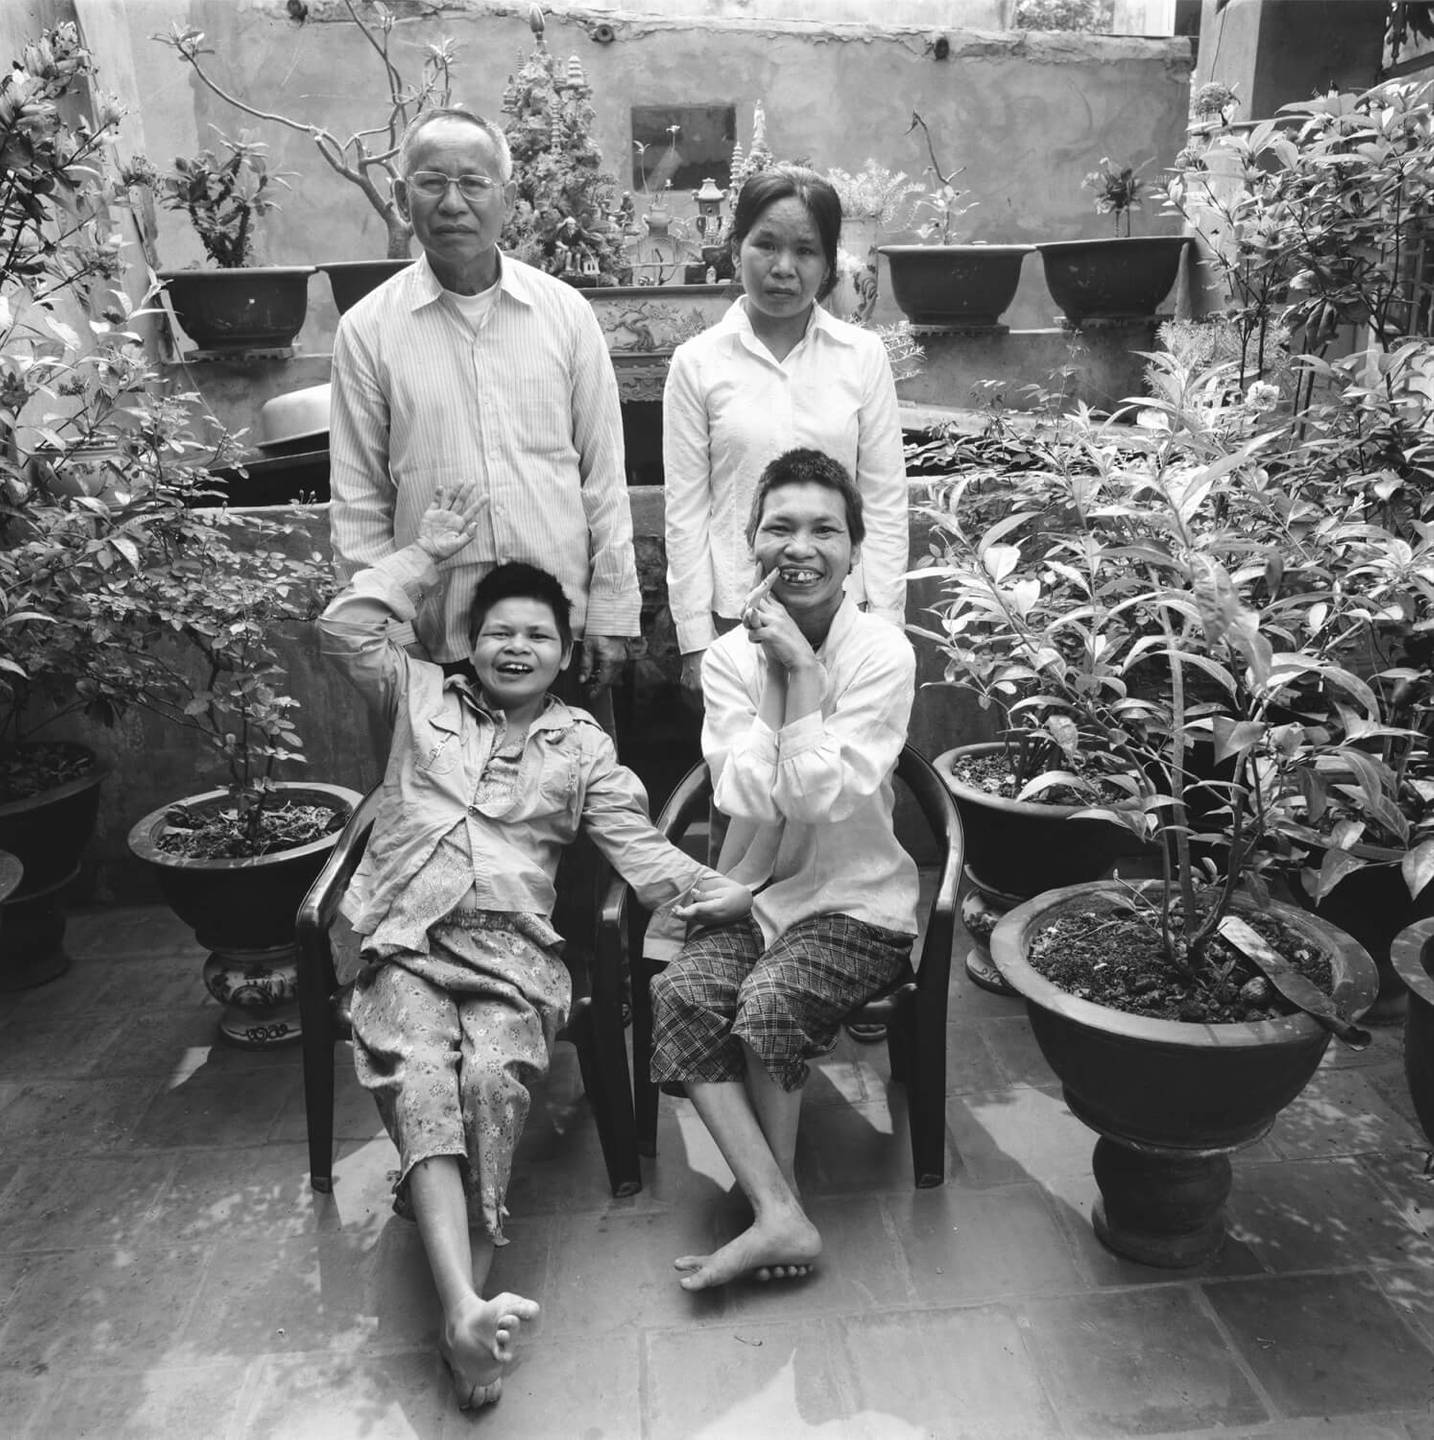 An older Asian gentleman with his three daughters, two of whom are deformed, in a courtyard.